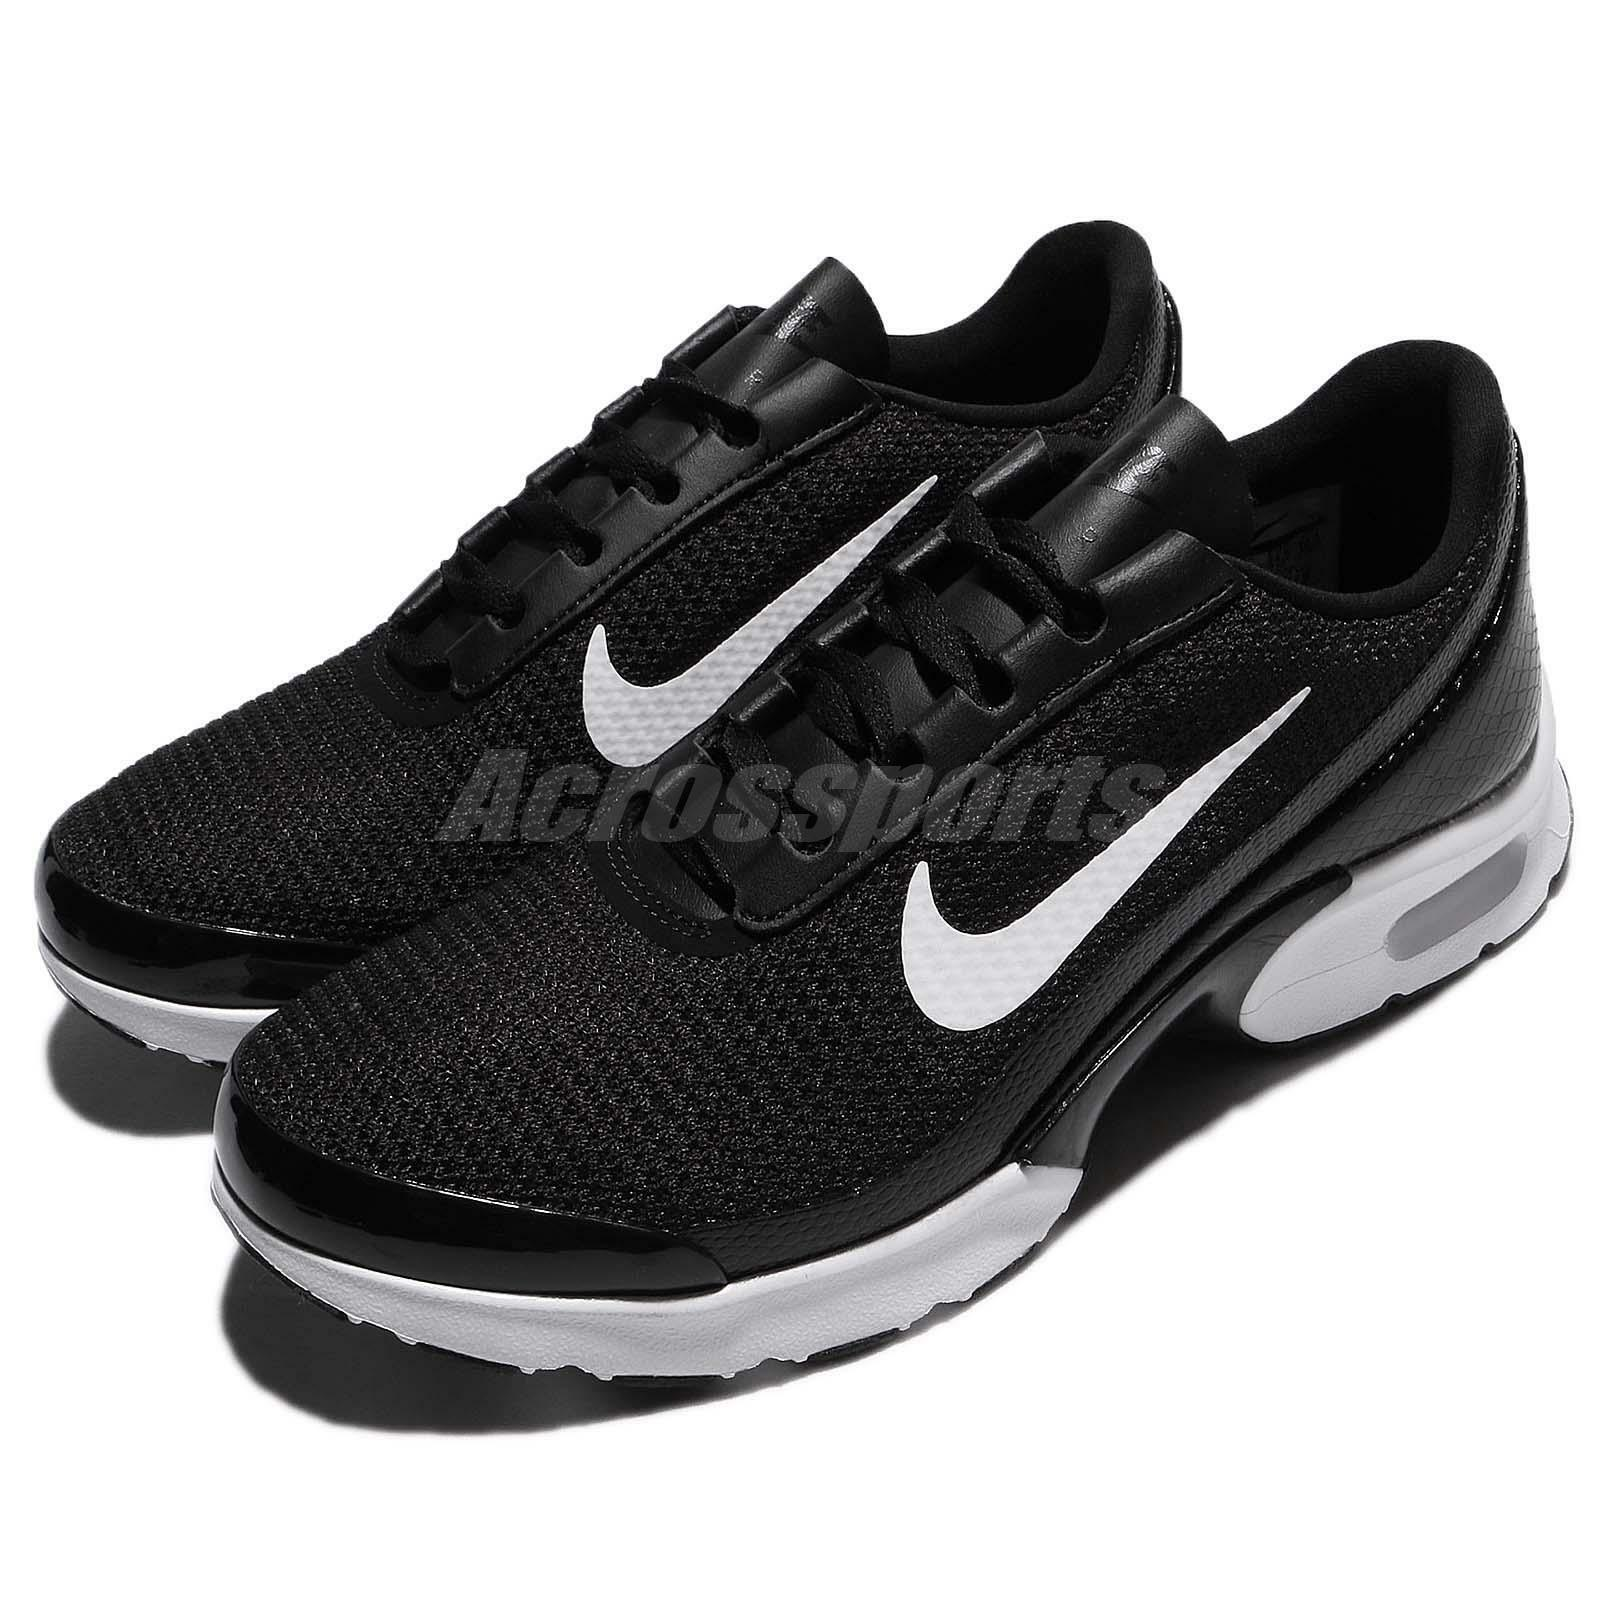 Wmns Nike Air Max Jewell Noir Blanc Femme Running Chaussures Sneakers 896194-012